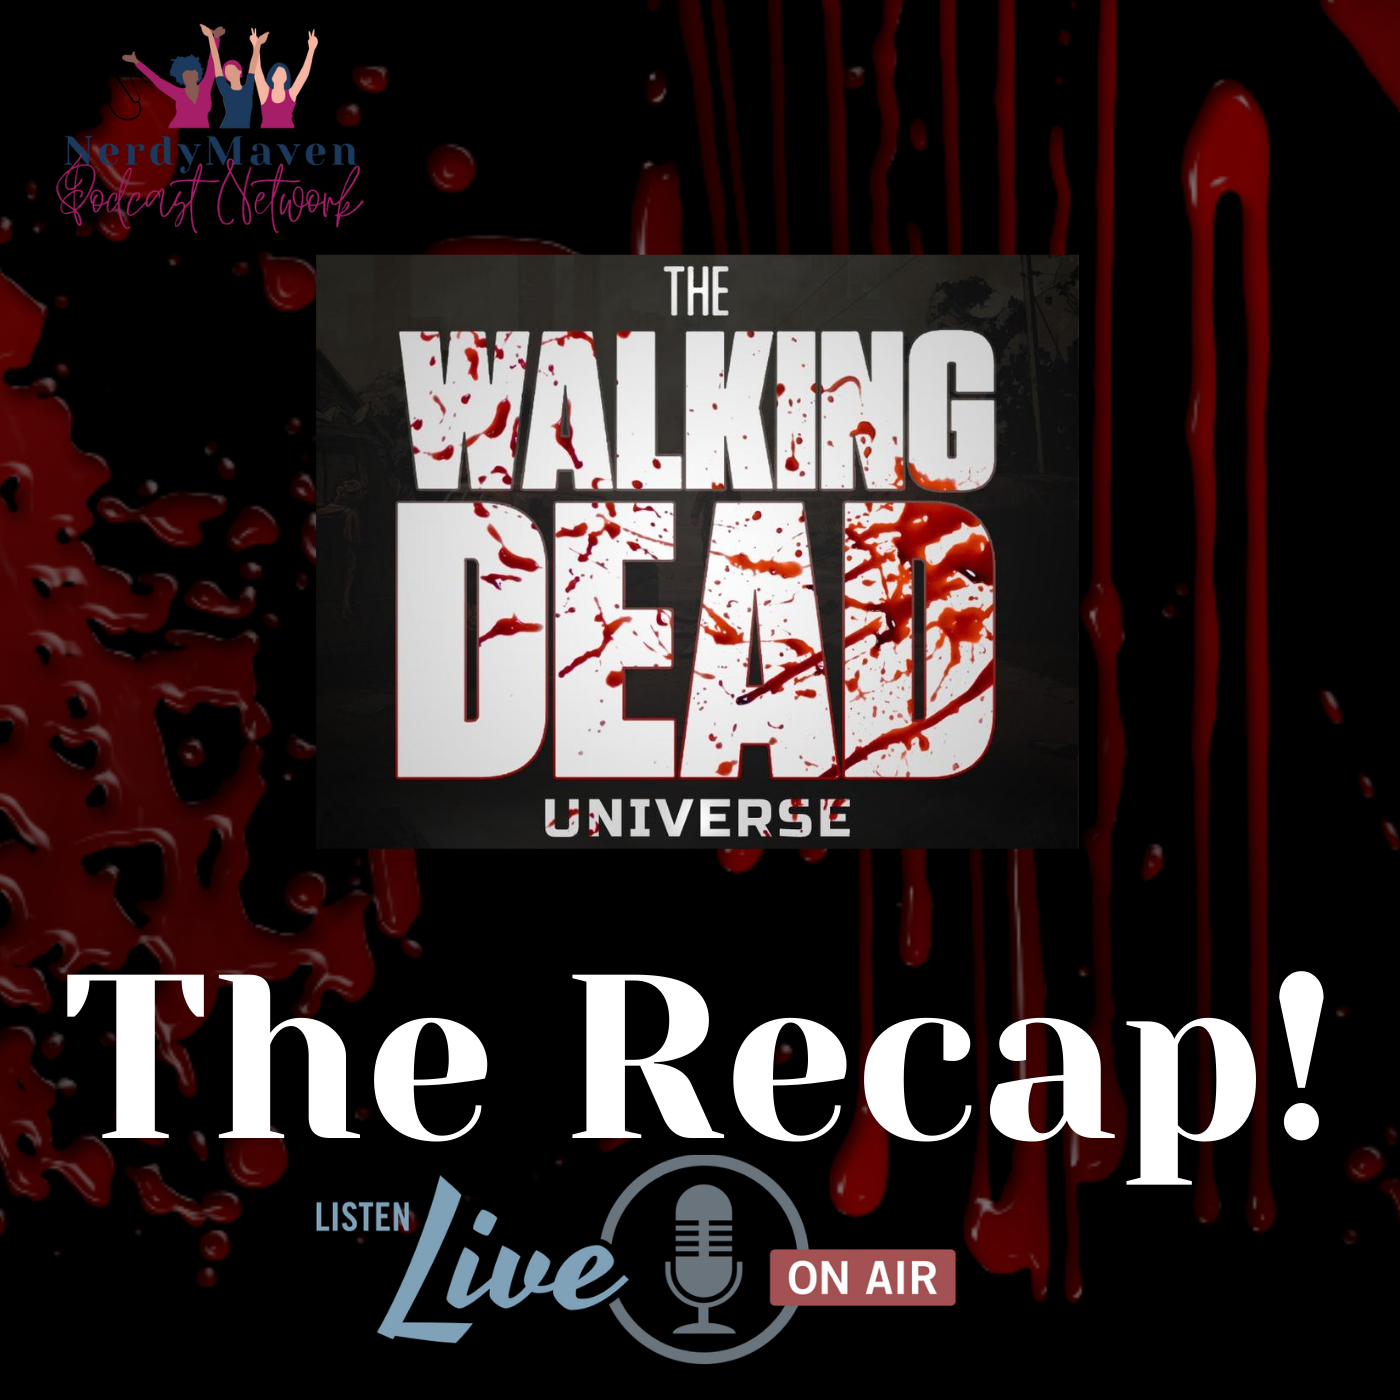 The Recap! The Walking Dead Universe podcast show image